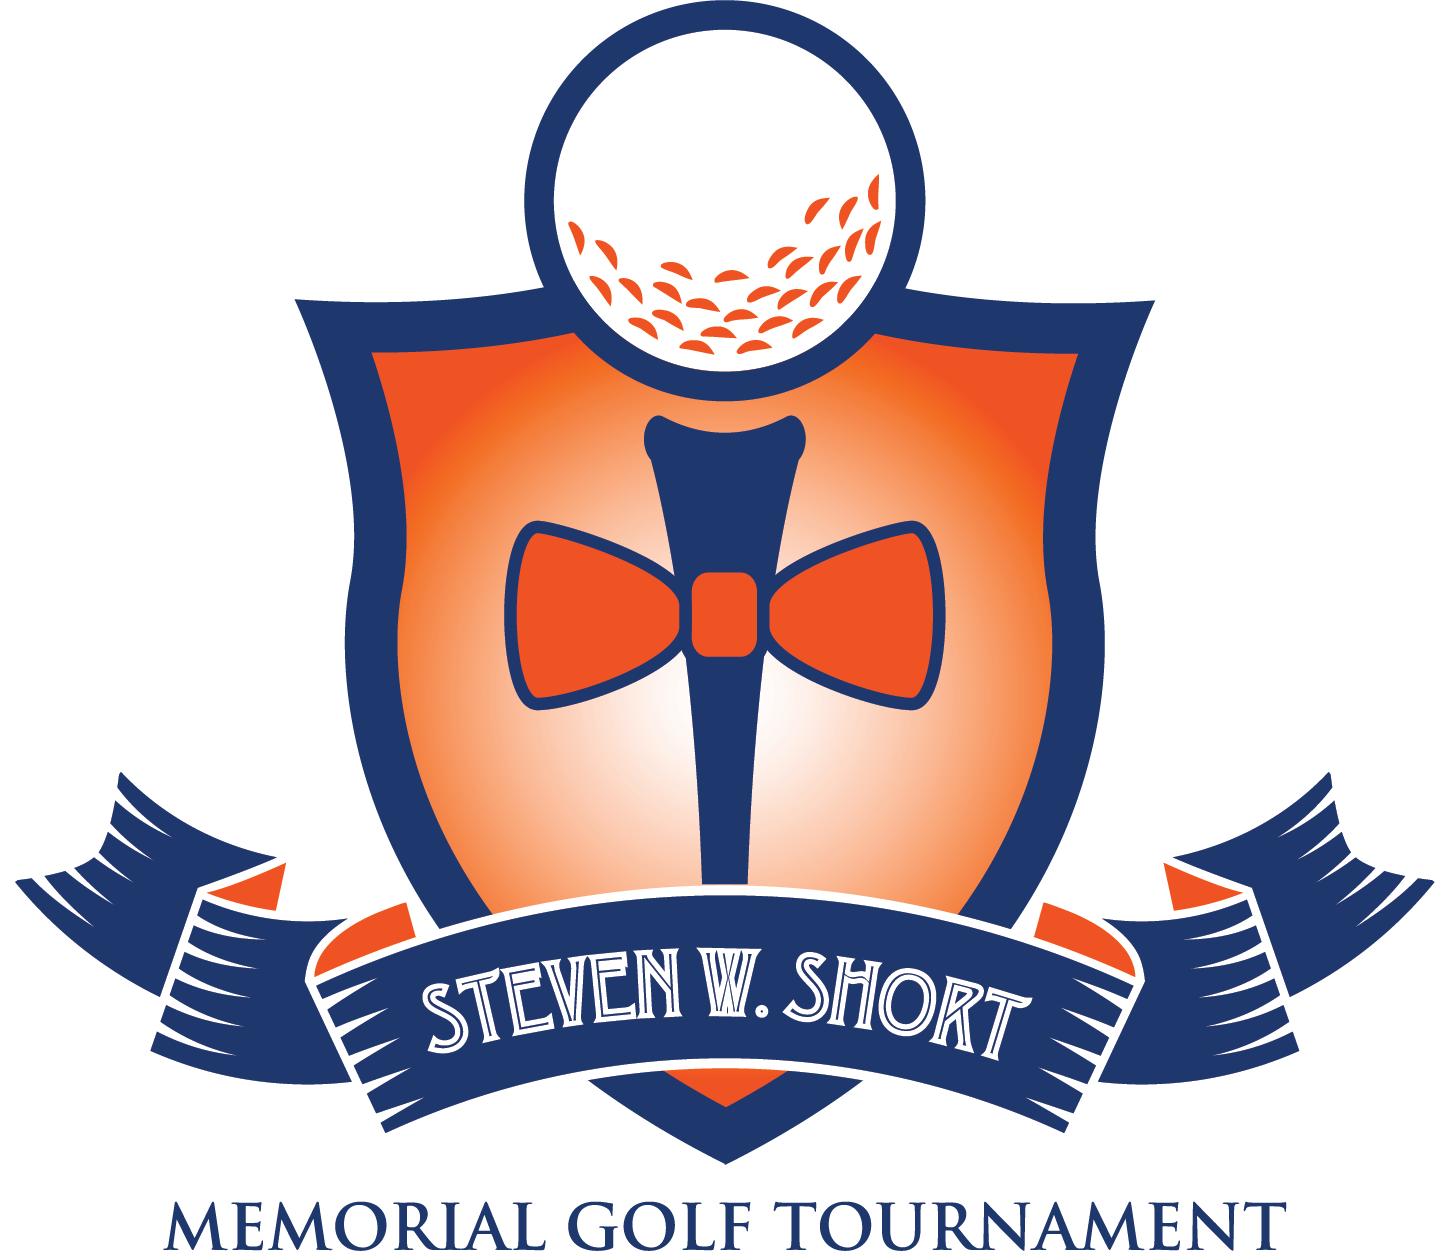 Steven W. Short Memorial Golf Tournament & Scholarship Program